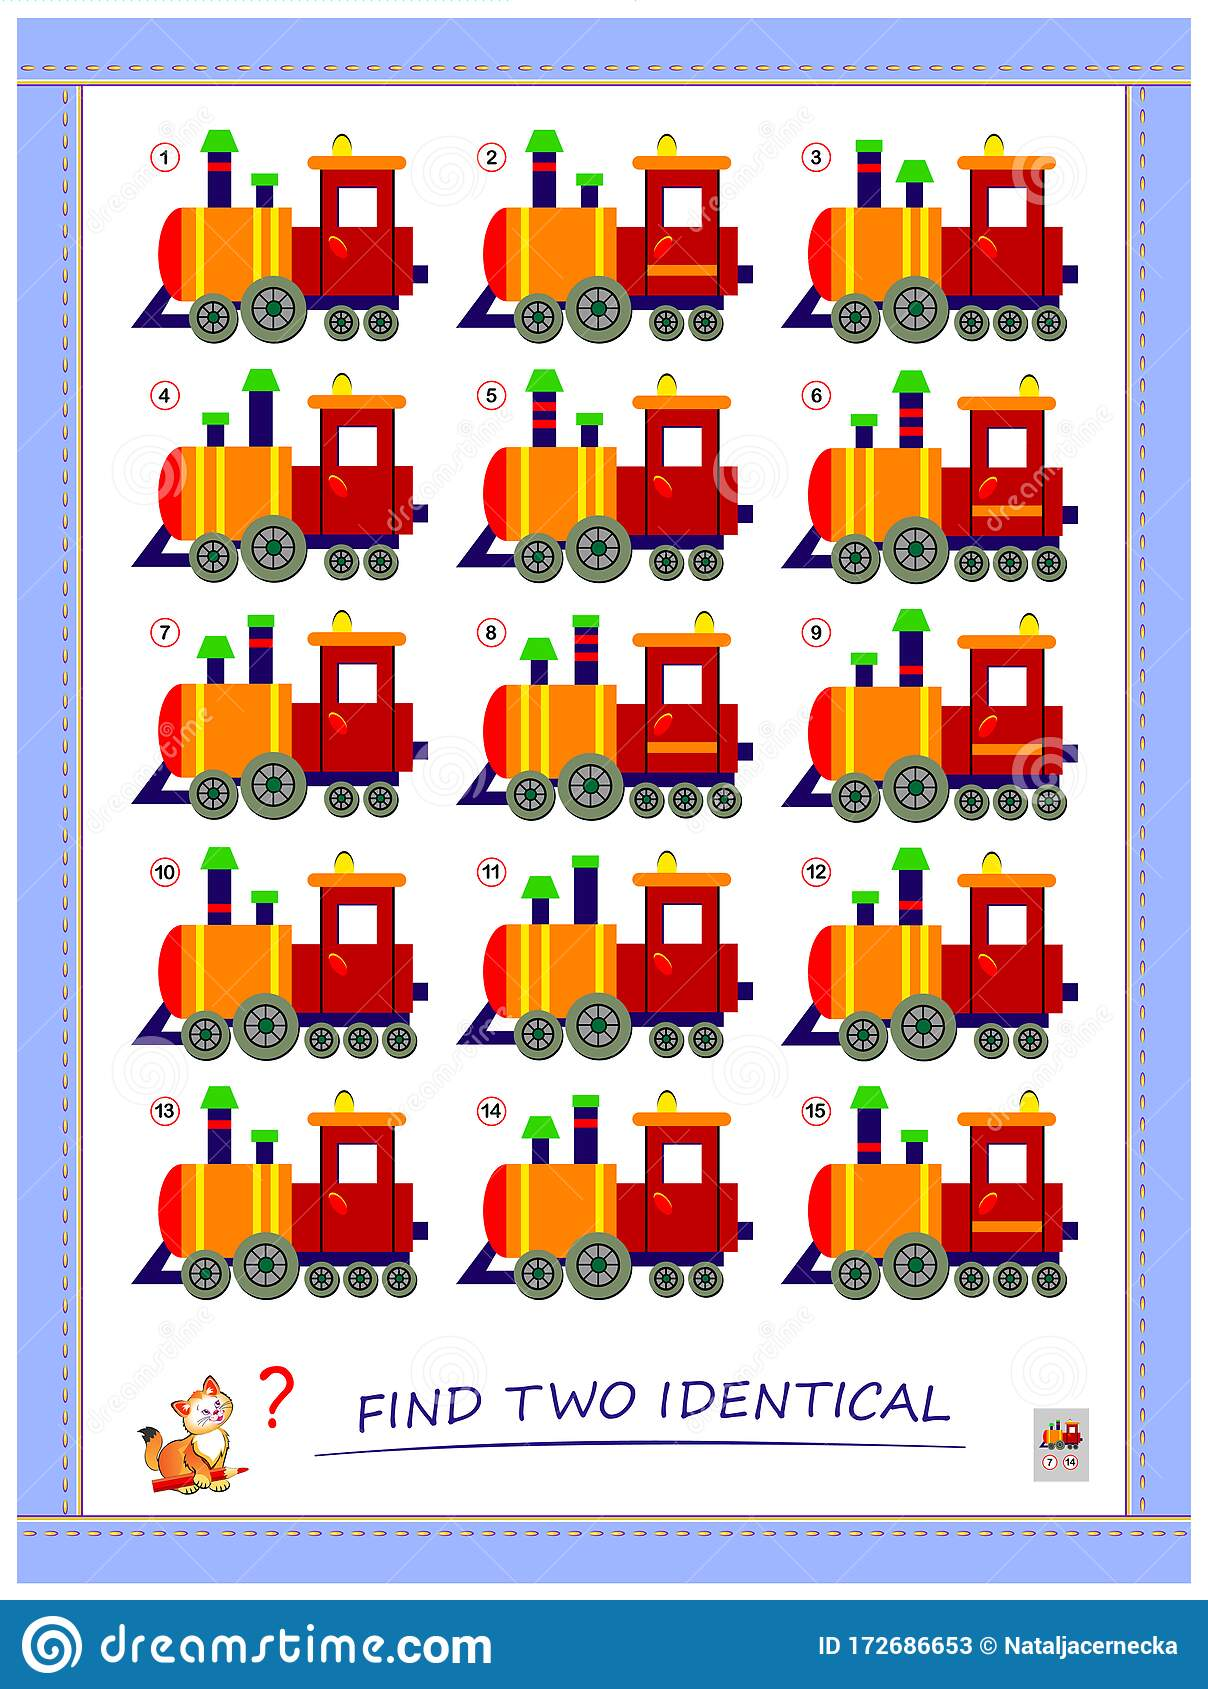 It's just an image of Logic Puzzles for Kids Printable pertaining to middle school printable